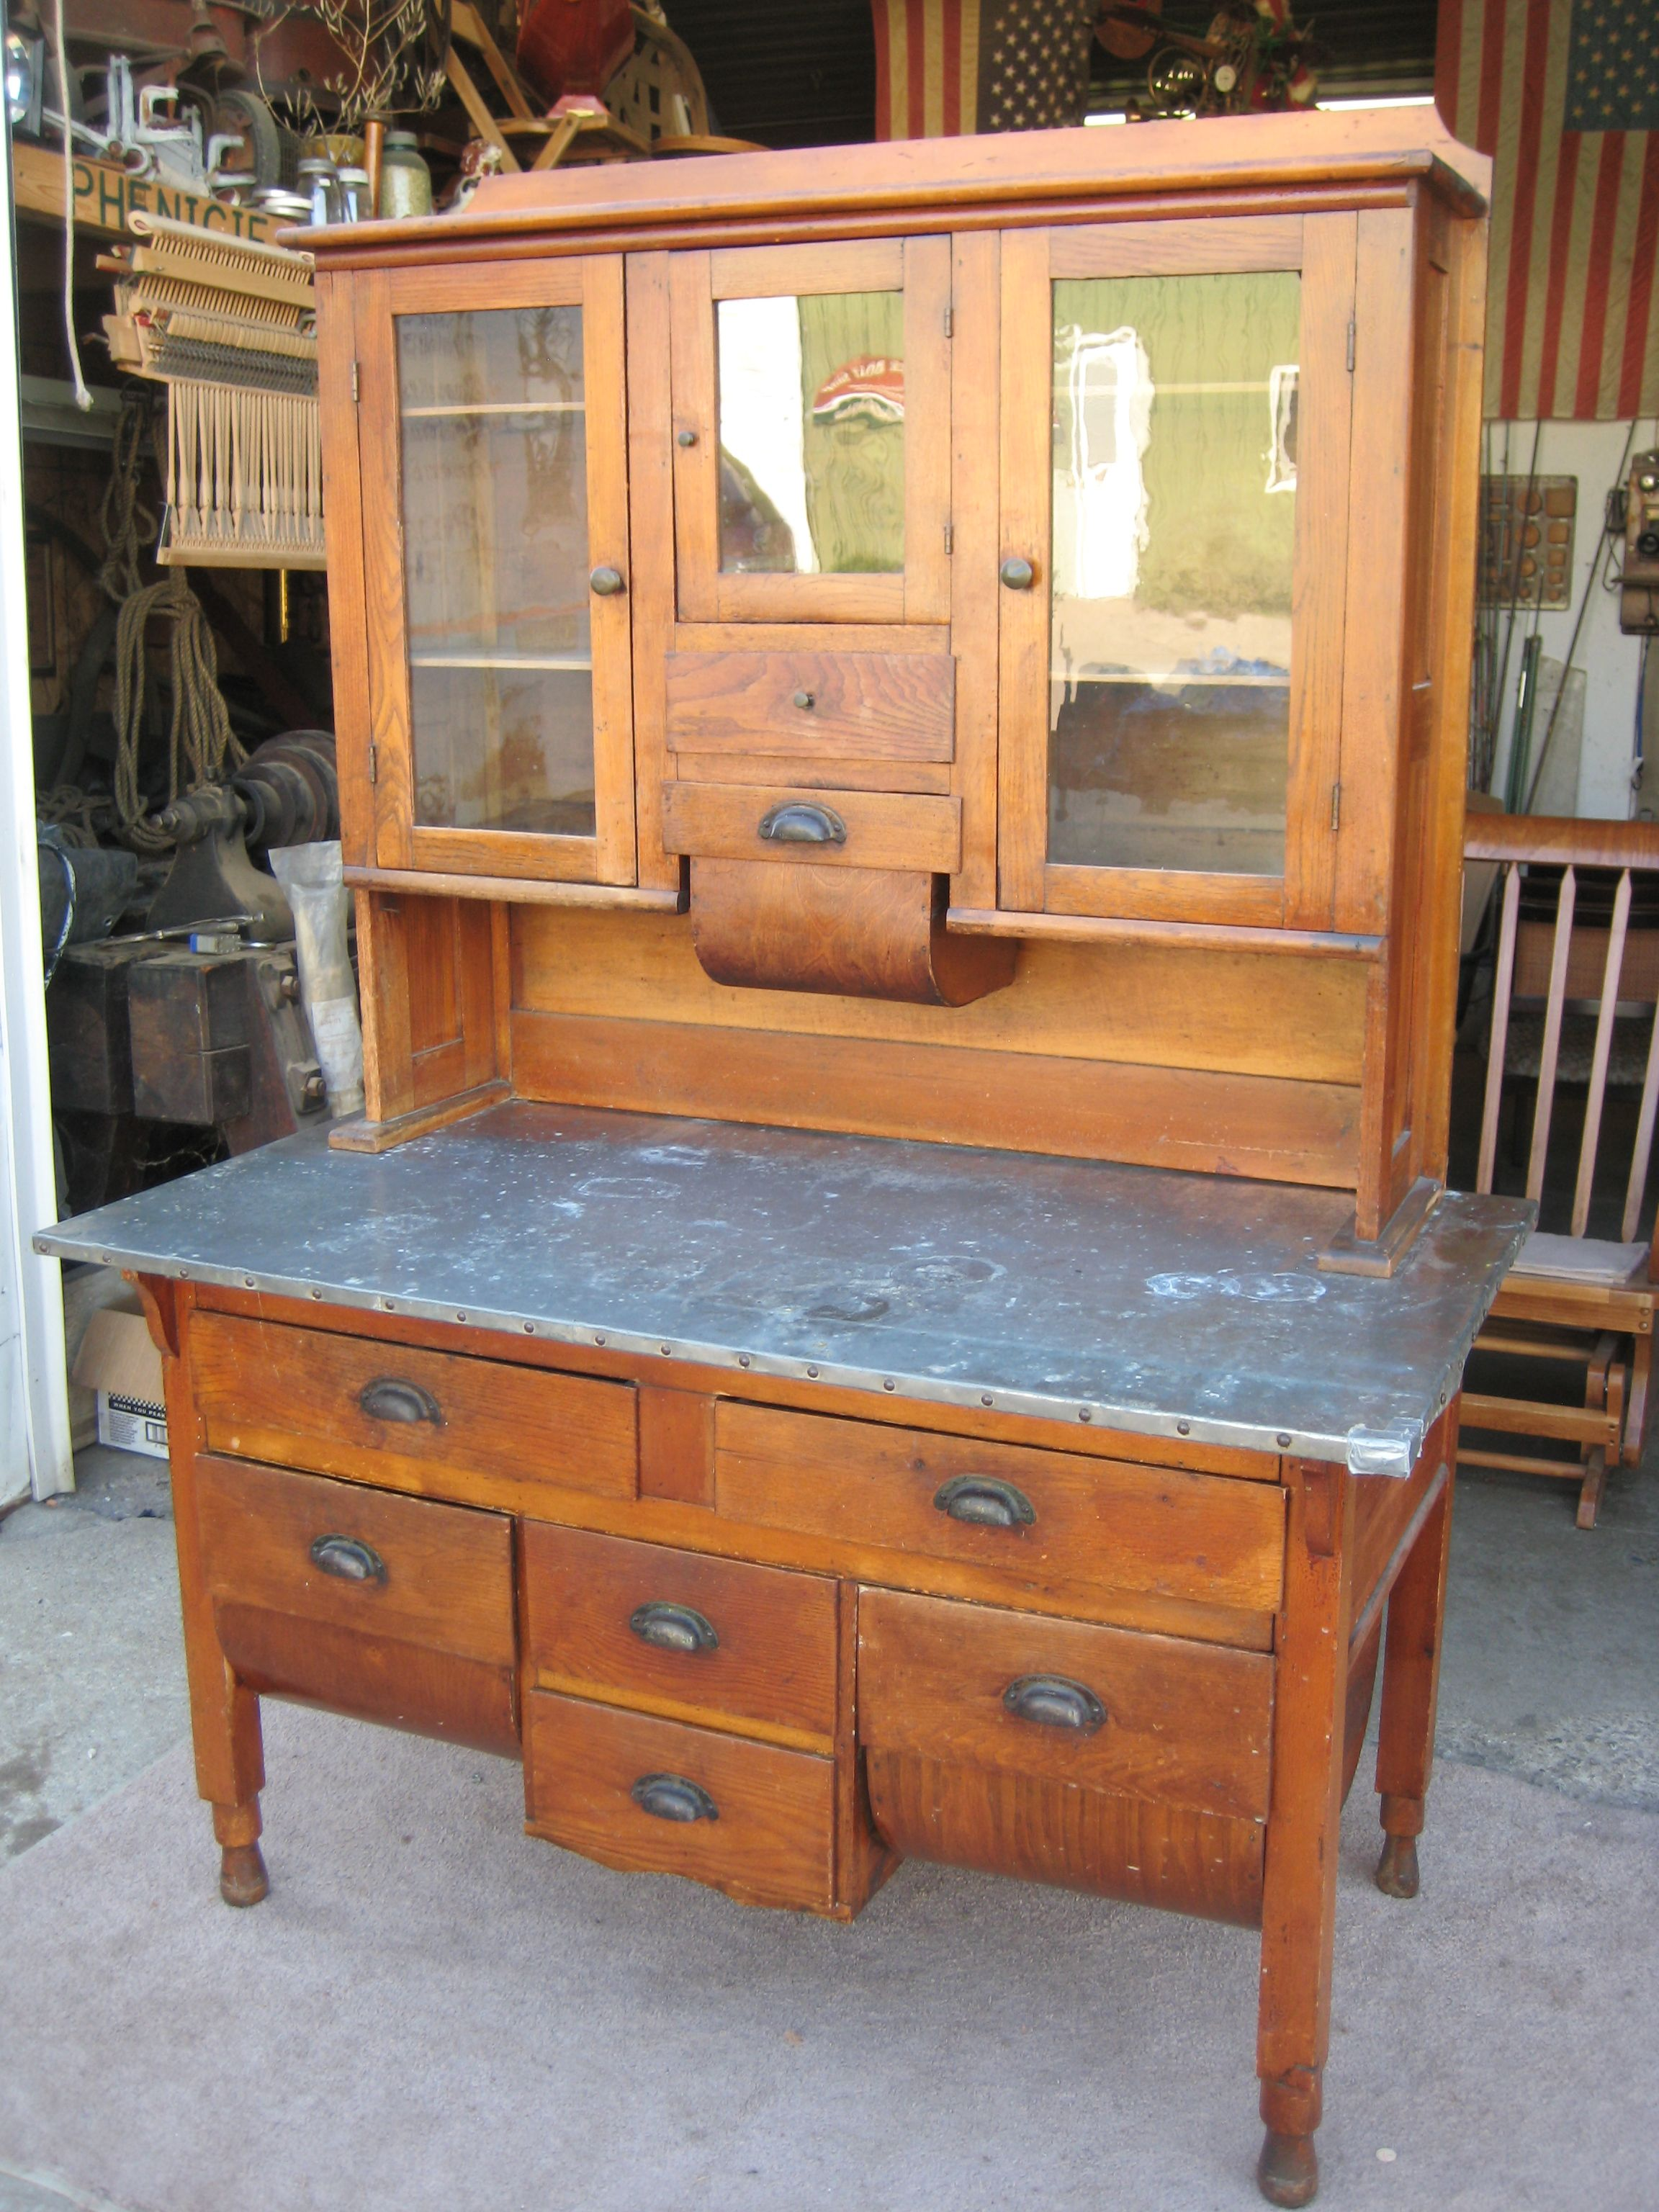 Hoosier Style Kitchen Cabinet Pre Hoosier Cabinet Just Arrived At The Mark Phenicie